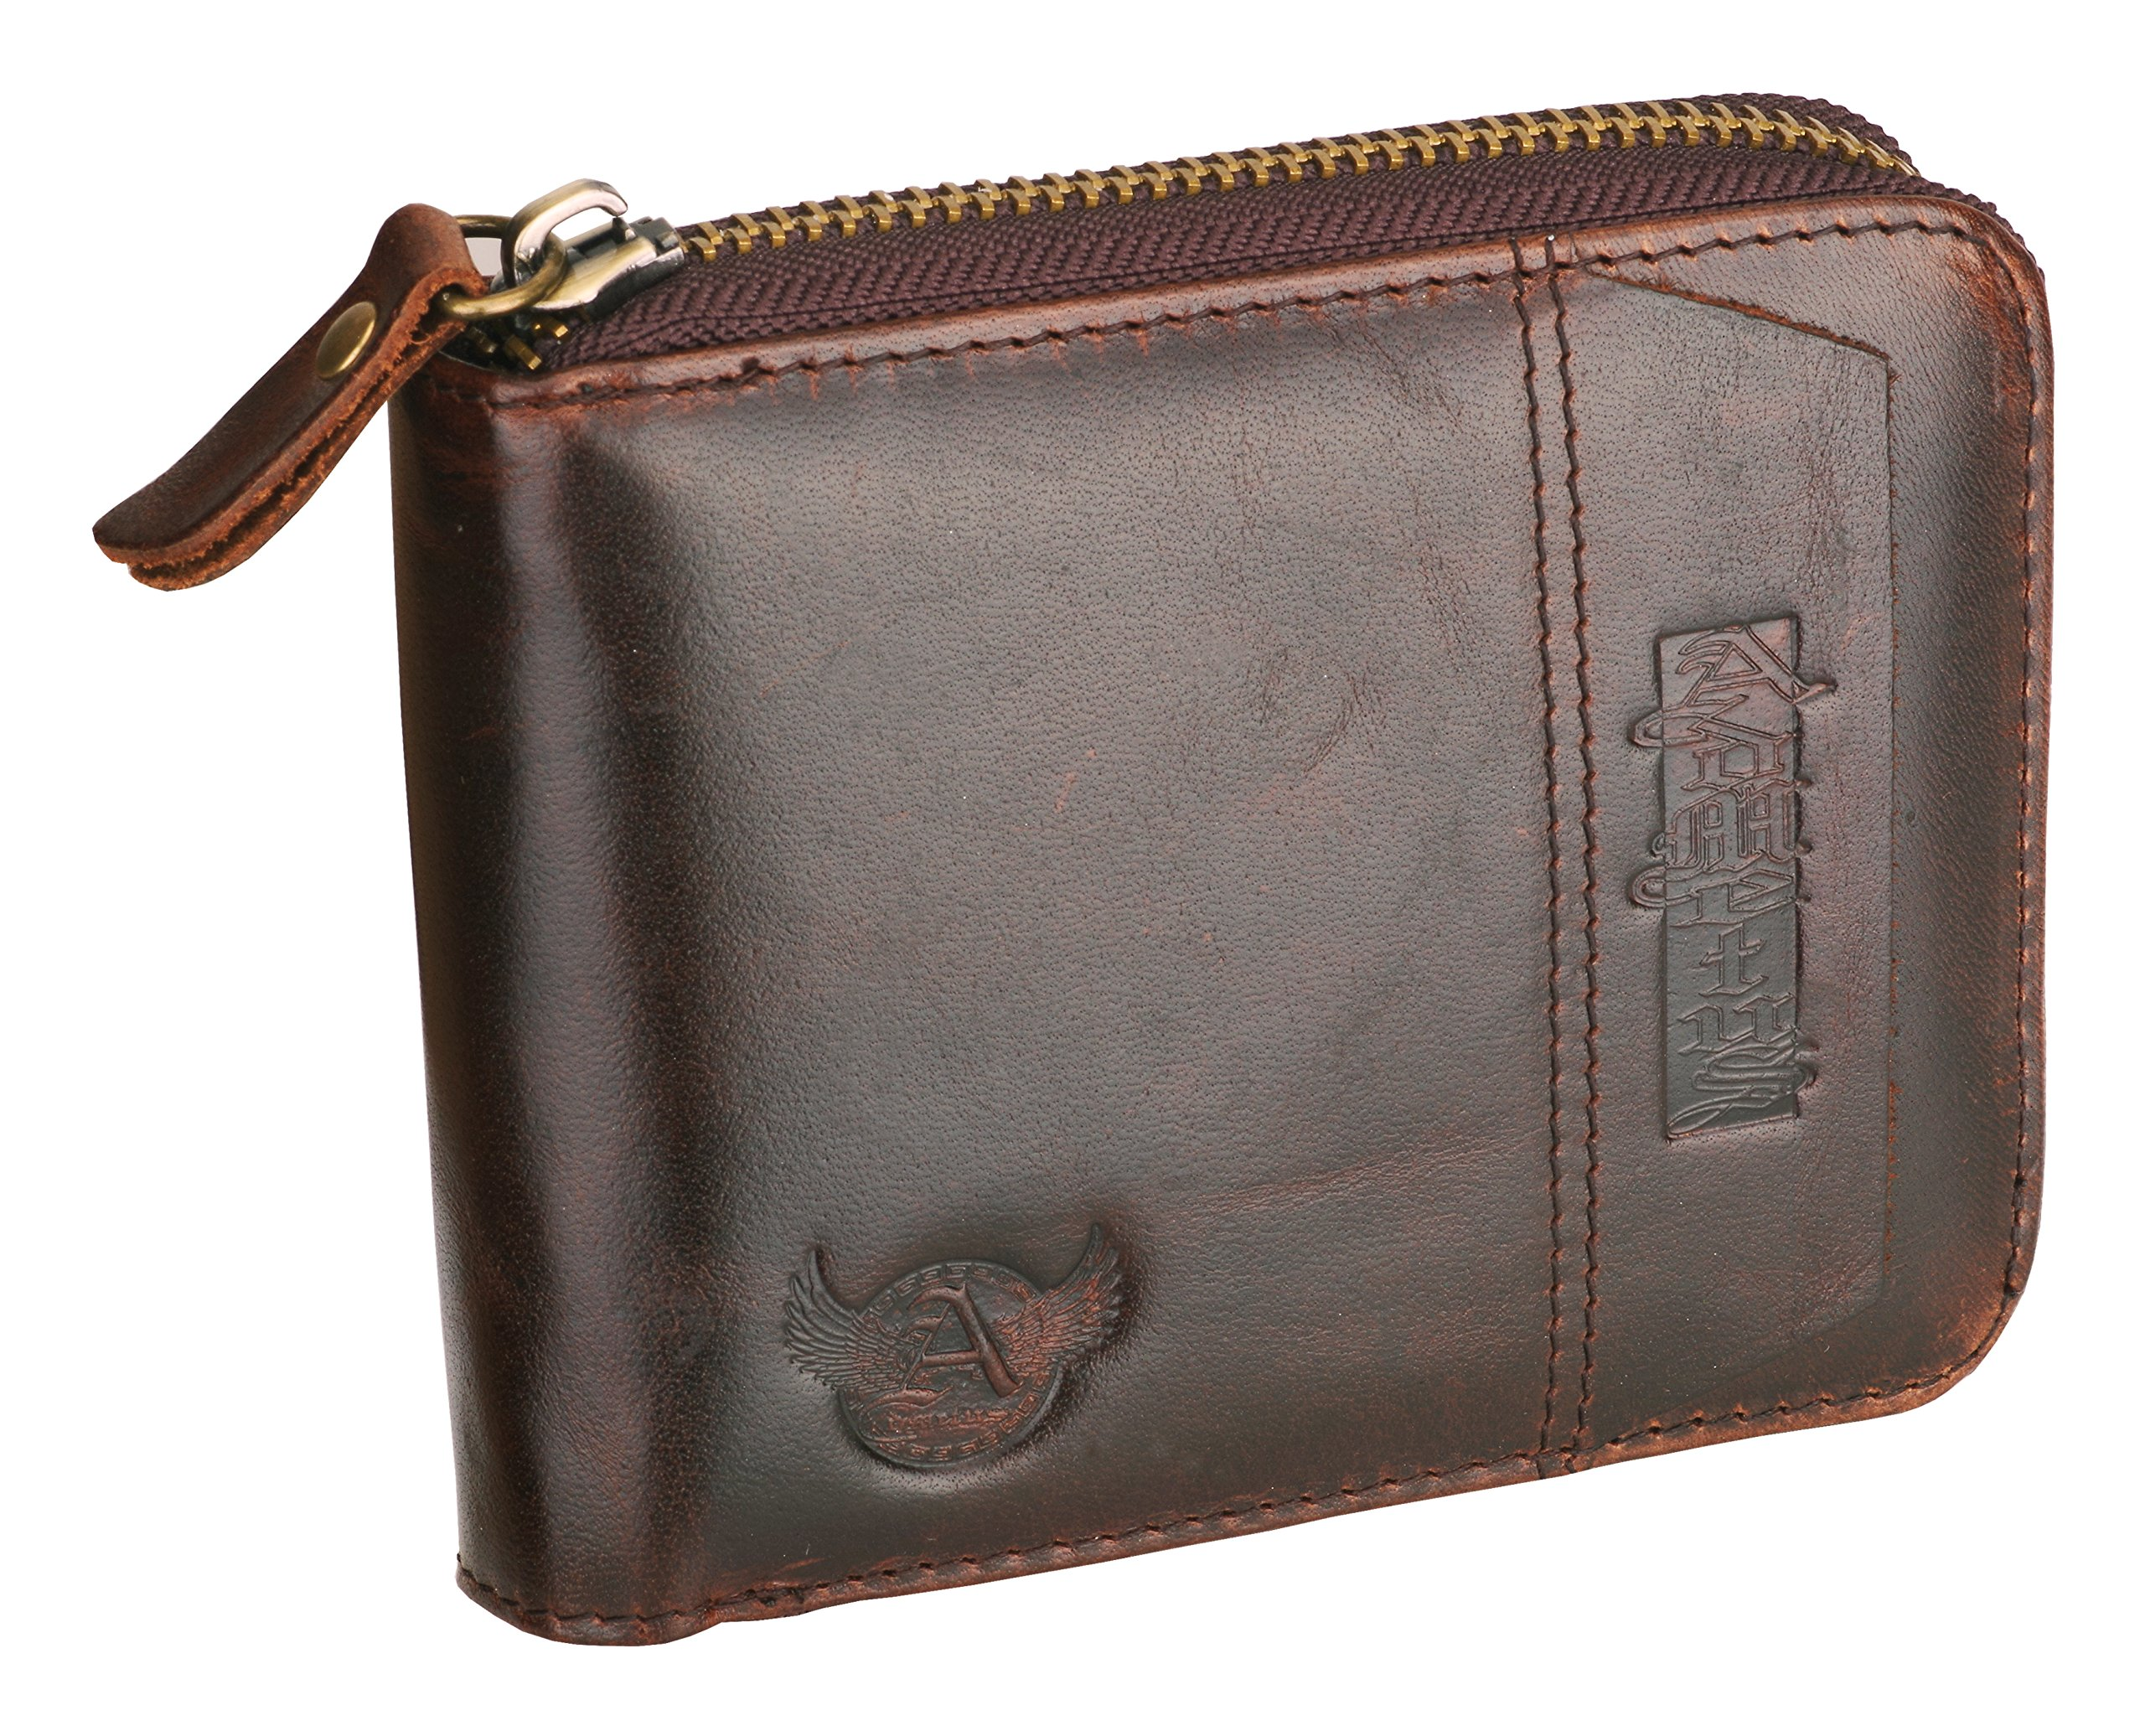 Admetus Genuine leather Zippered Bifold gifts for men wallet Exquisite gift ,Brown2